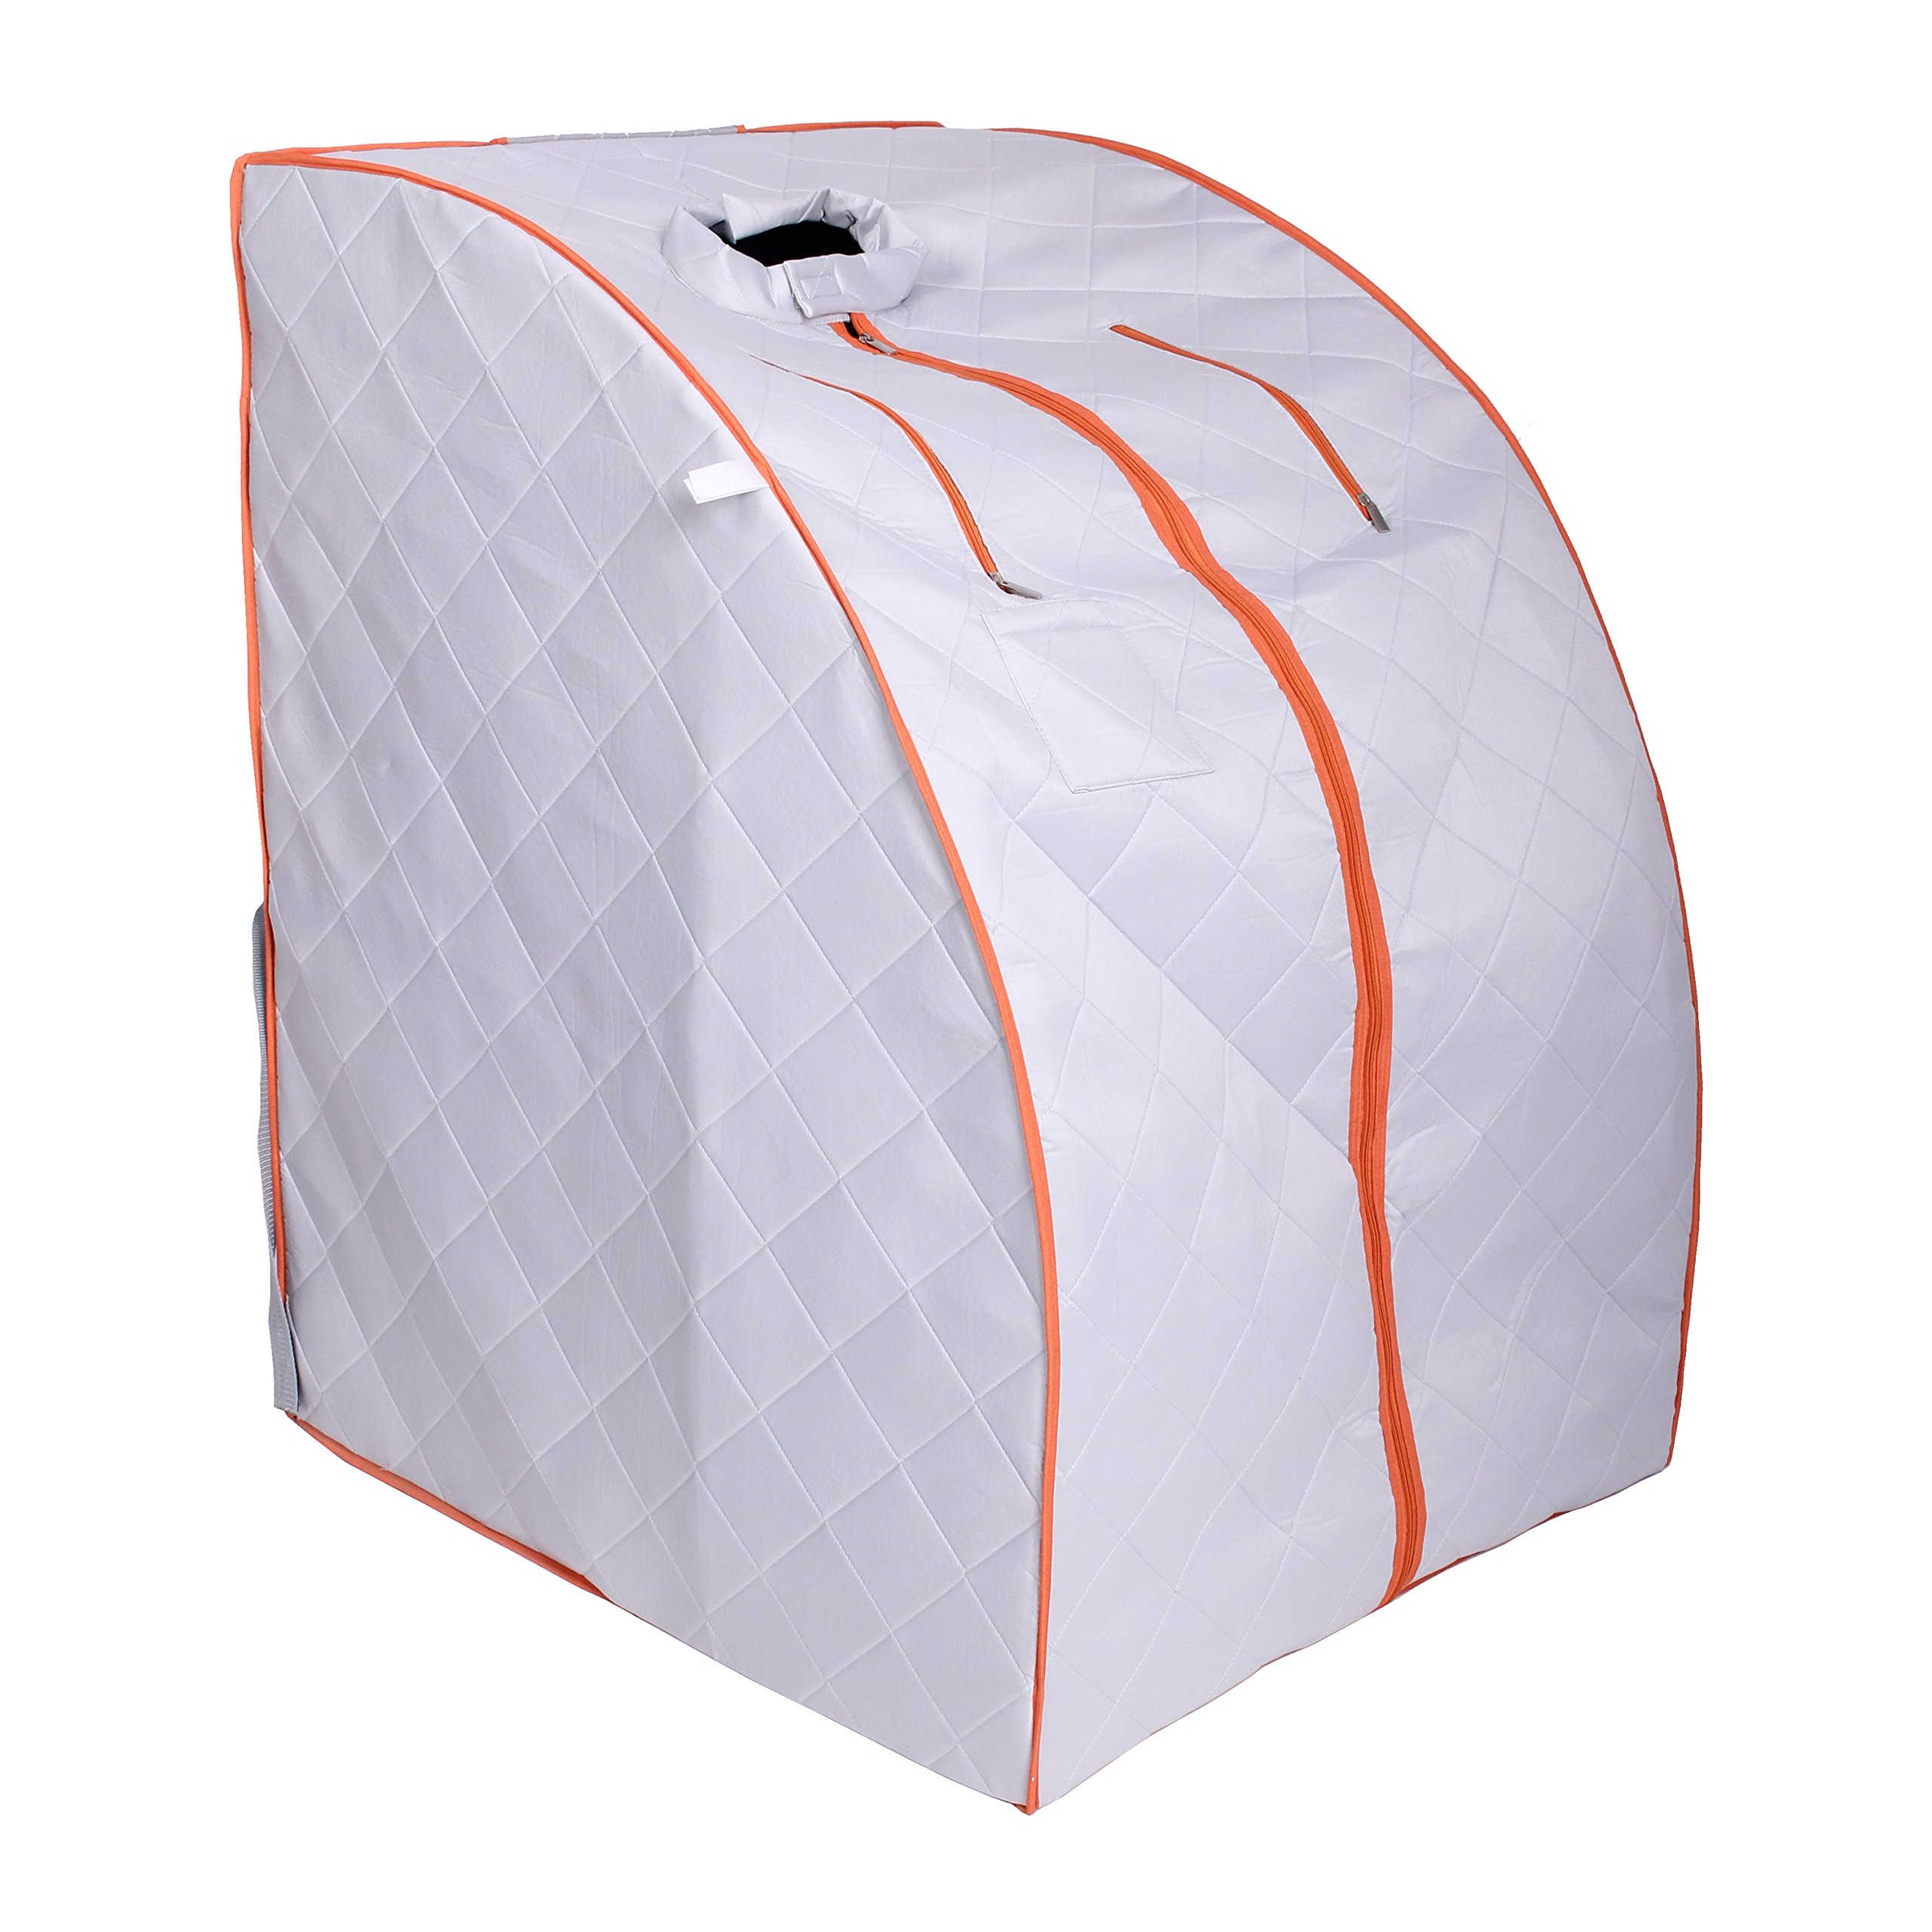 ALEKO PIN15SY Personal Folding Portable Home Infrared Sauna w/ Folding Chair and Foot Pad, Silver w/ Orange Trim Color